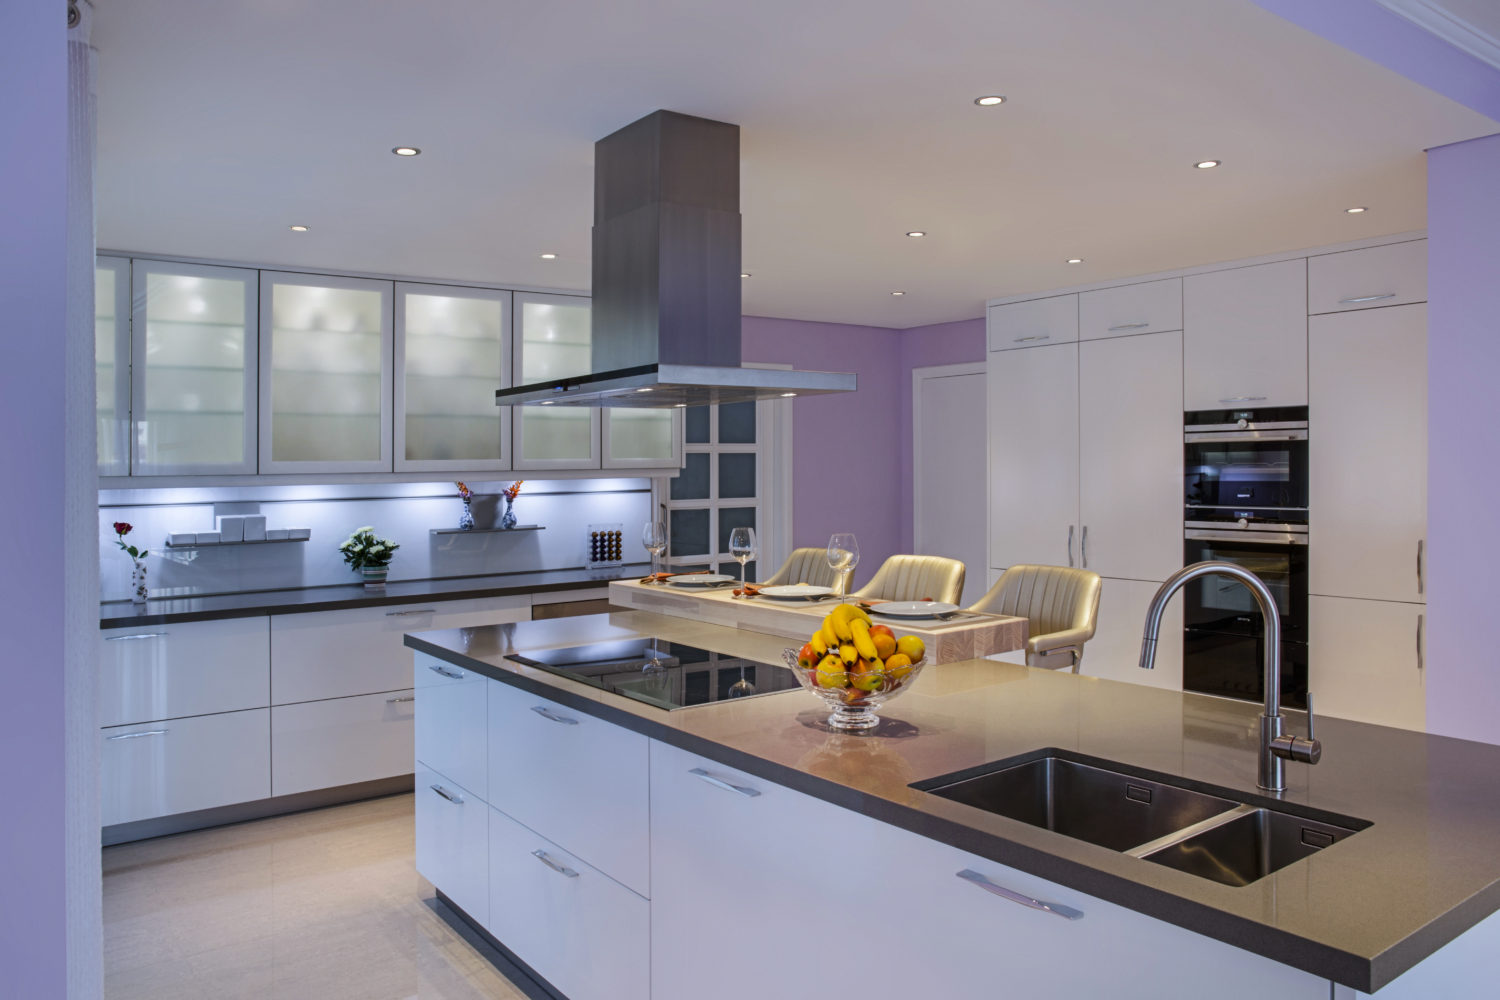 Complete Kitchen Renovation In Green Community West Family Villa